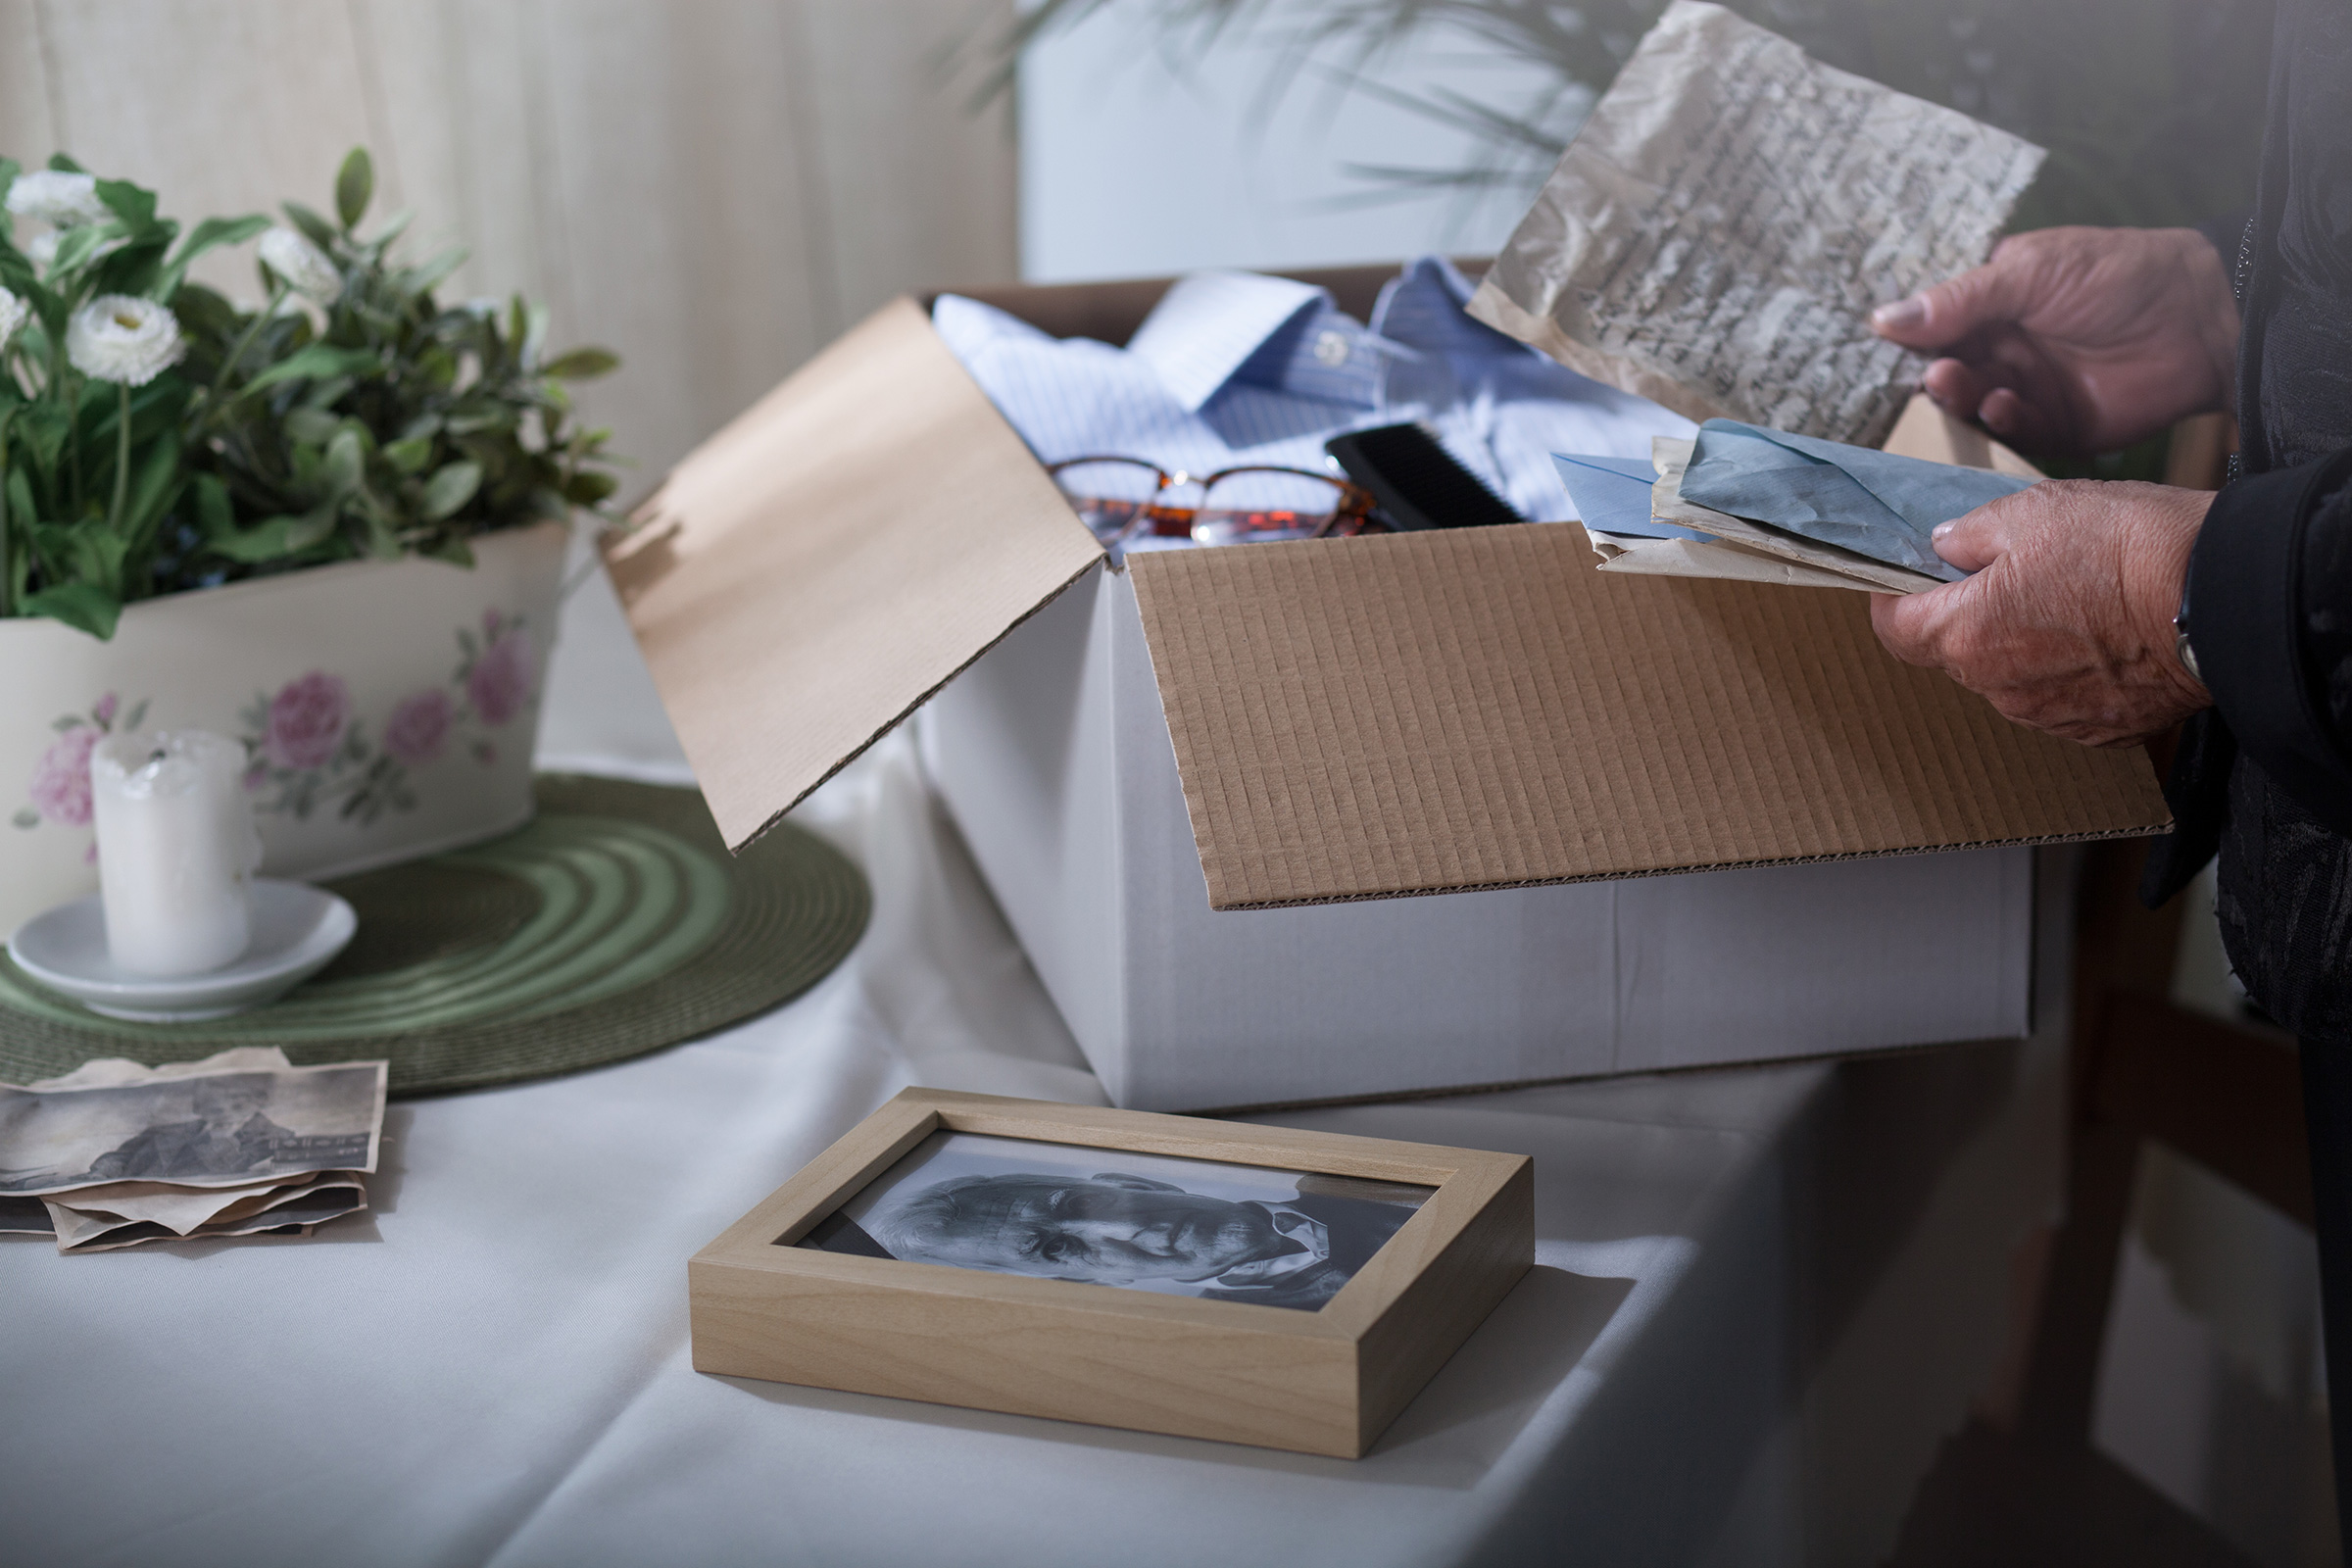 It may sound morbid, but creating a findable file, binder, cloud-based drive, or even shoebox where you store estate documents and meaningful personal effects will save your loved ones incalculable time, money, and suffering.